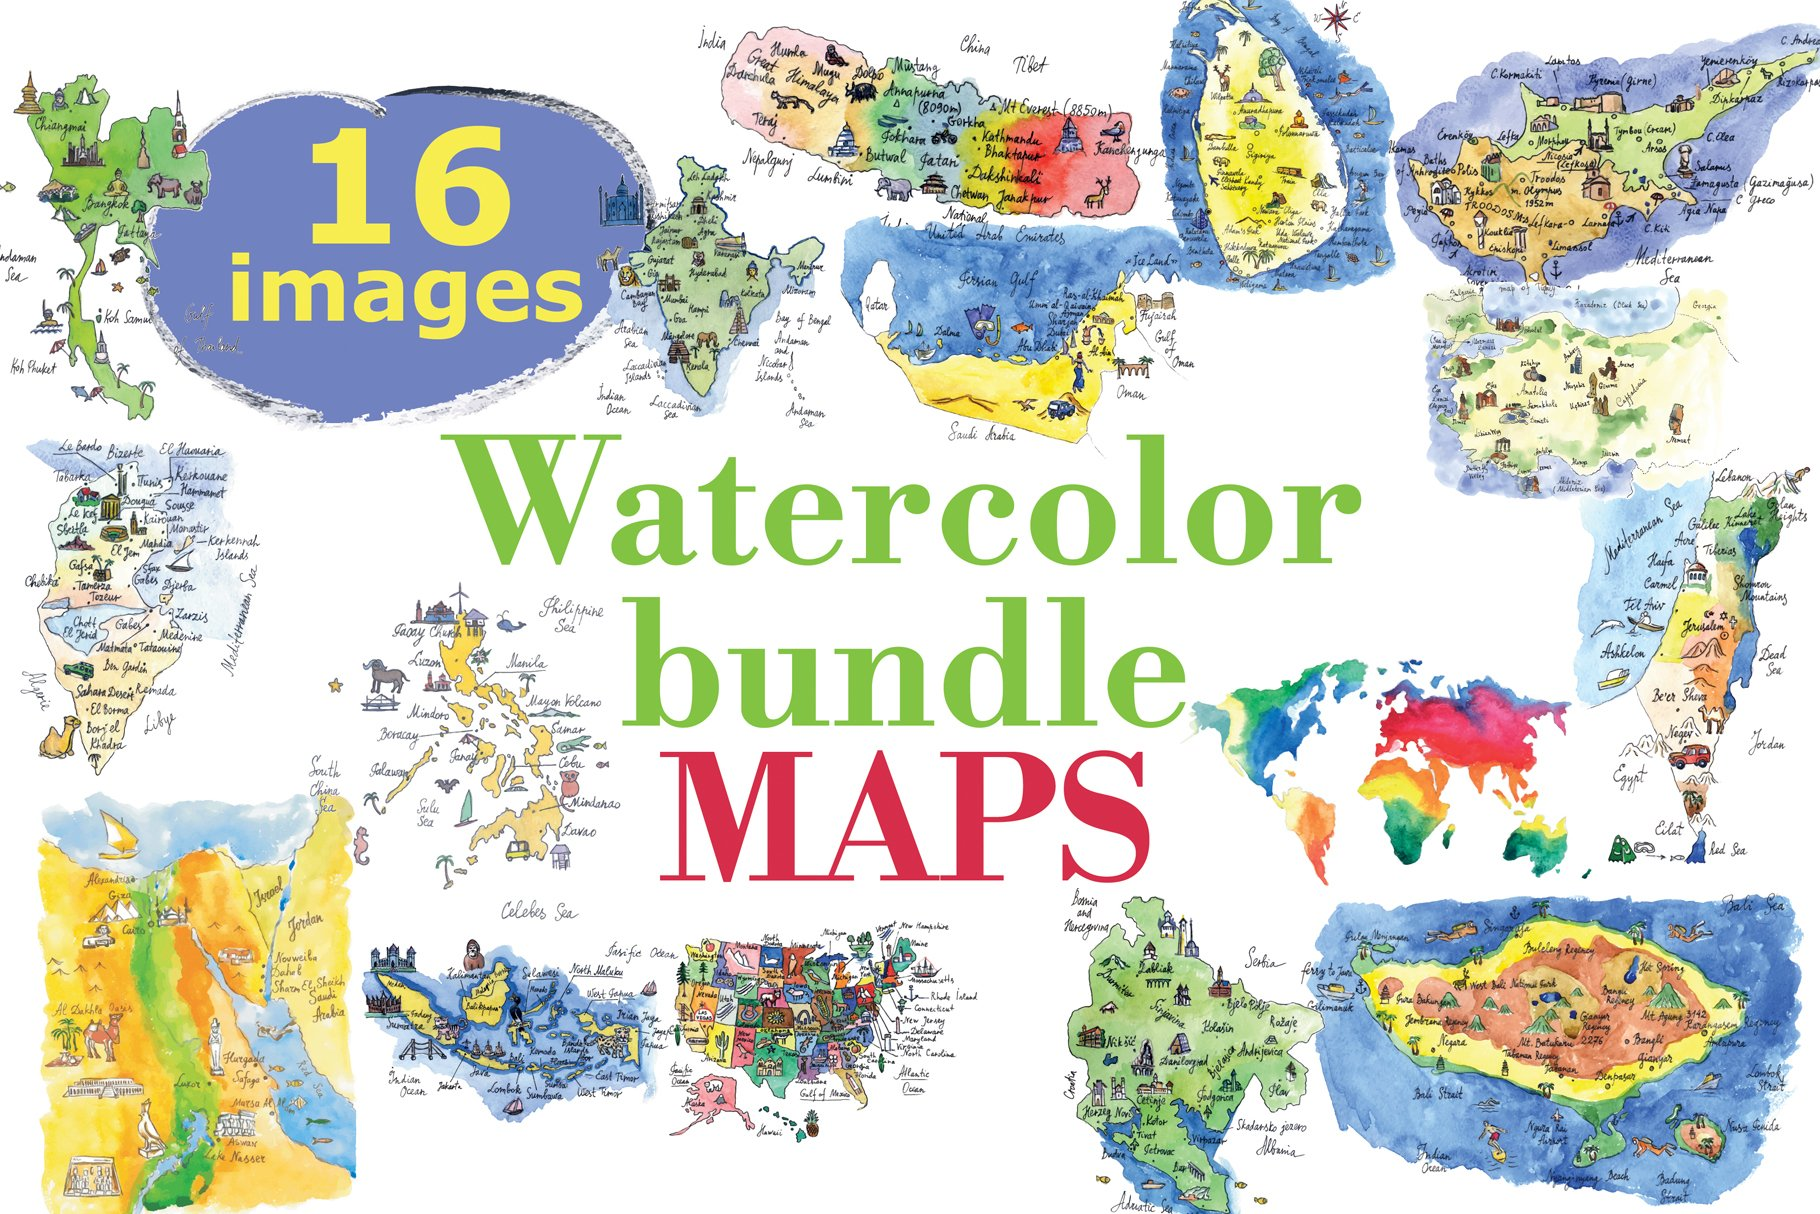 Watercolor bundle maps example image 1